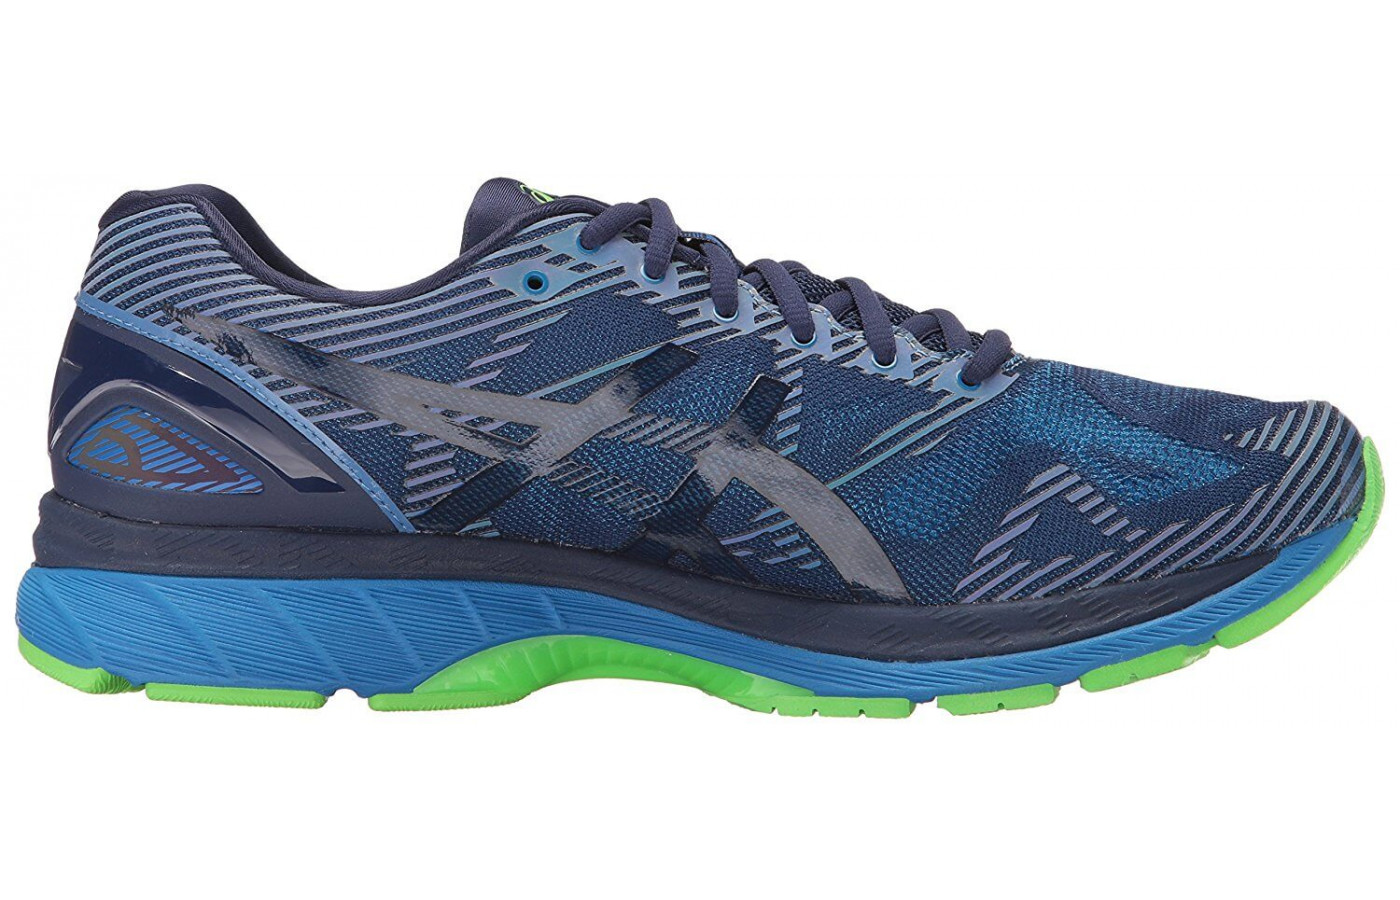 hot sale online 9a057 35a24 Asics Gel Nimbus 19 Lite Show Reviewed & Rated